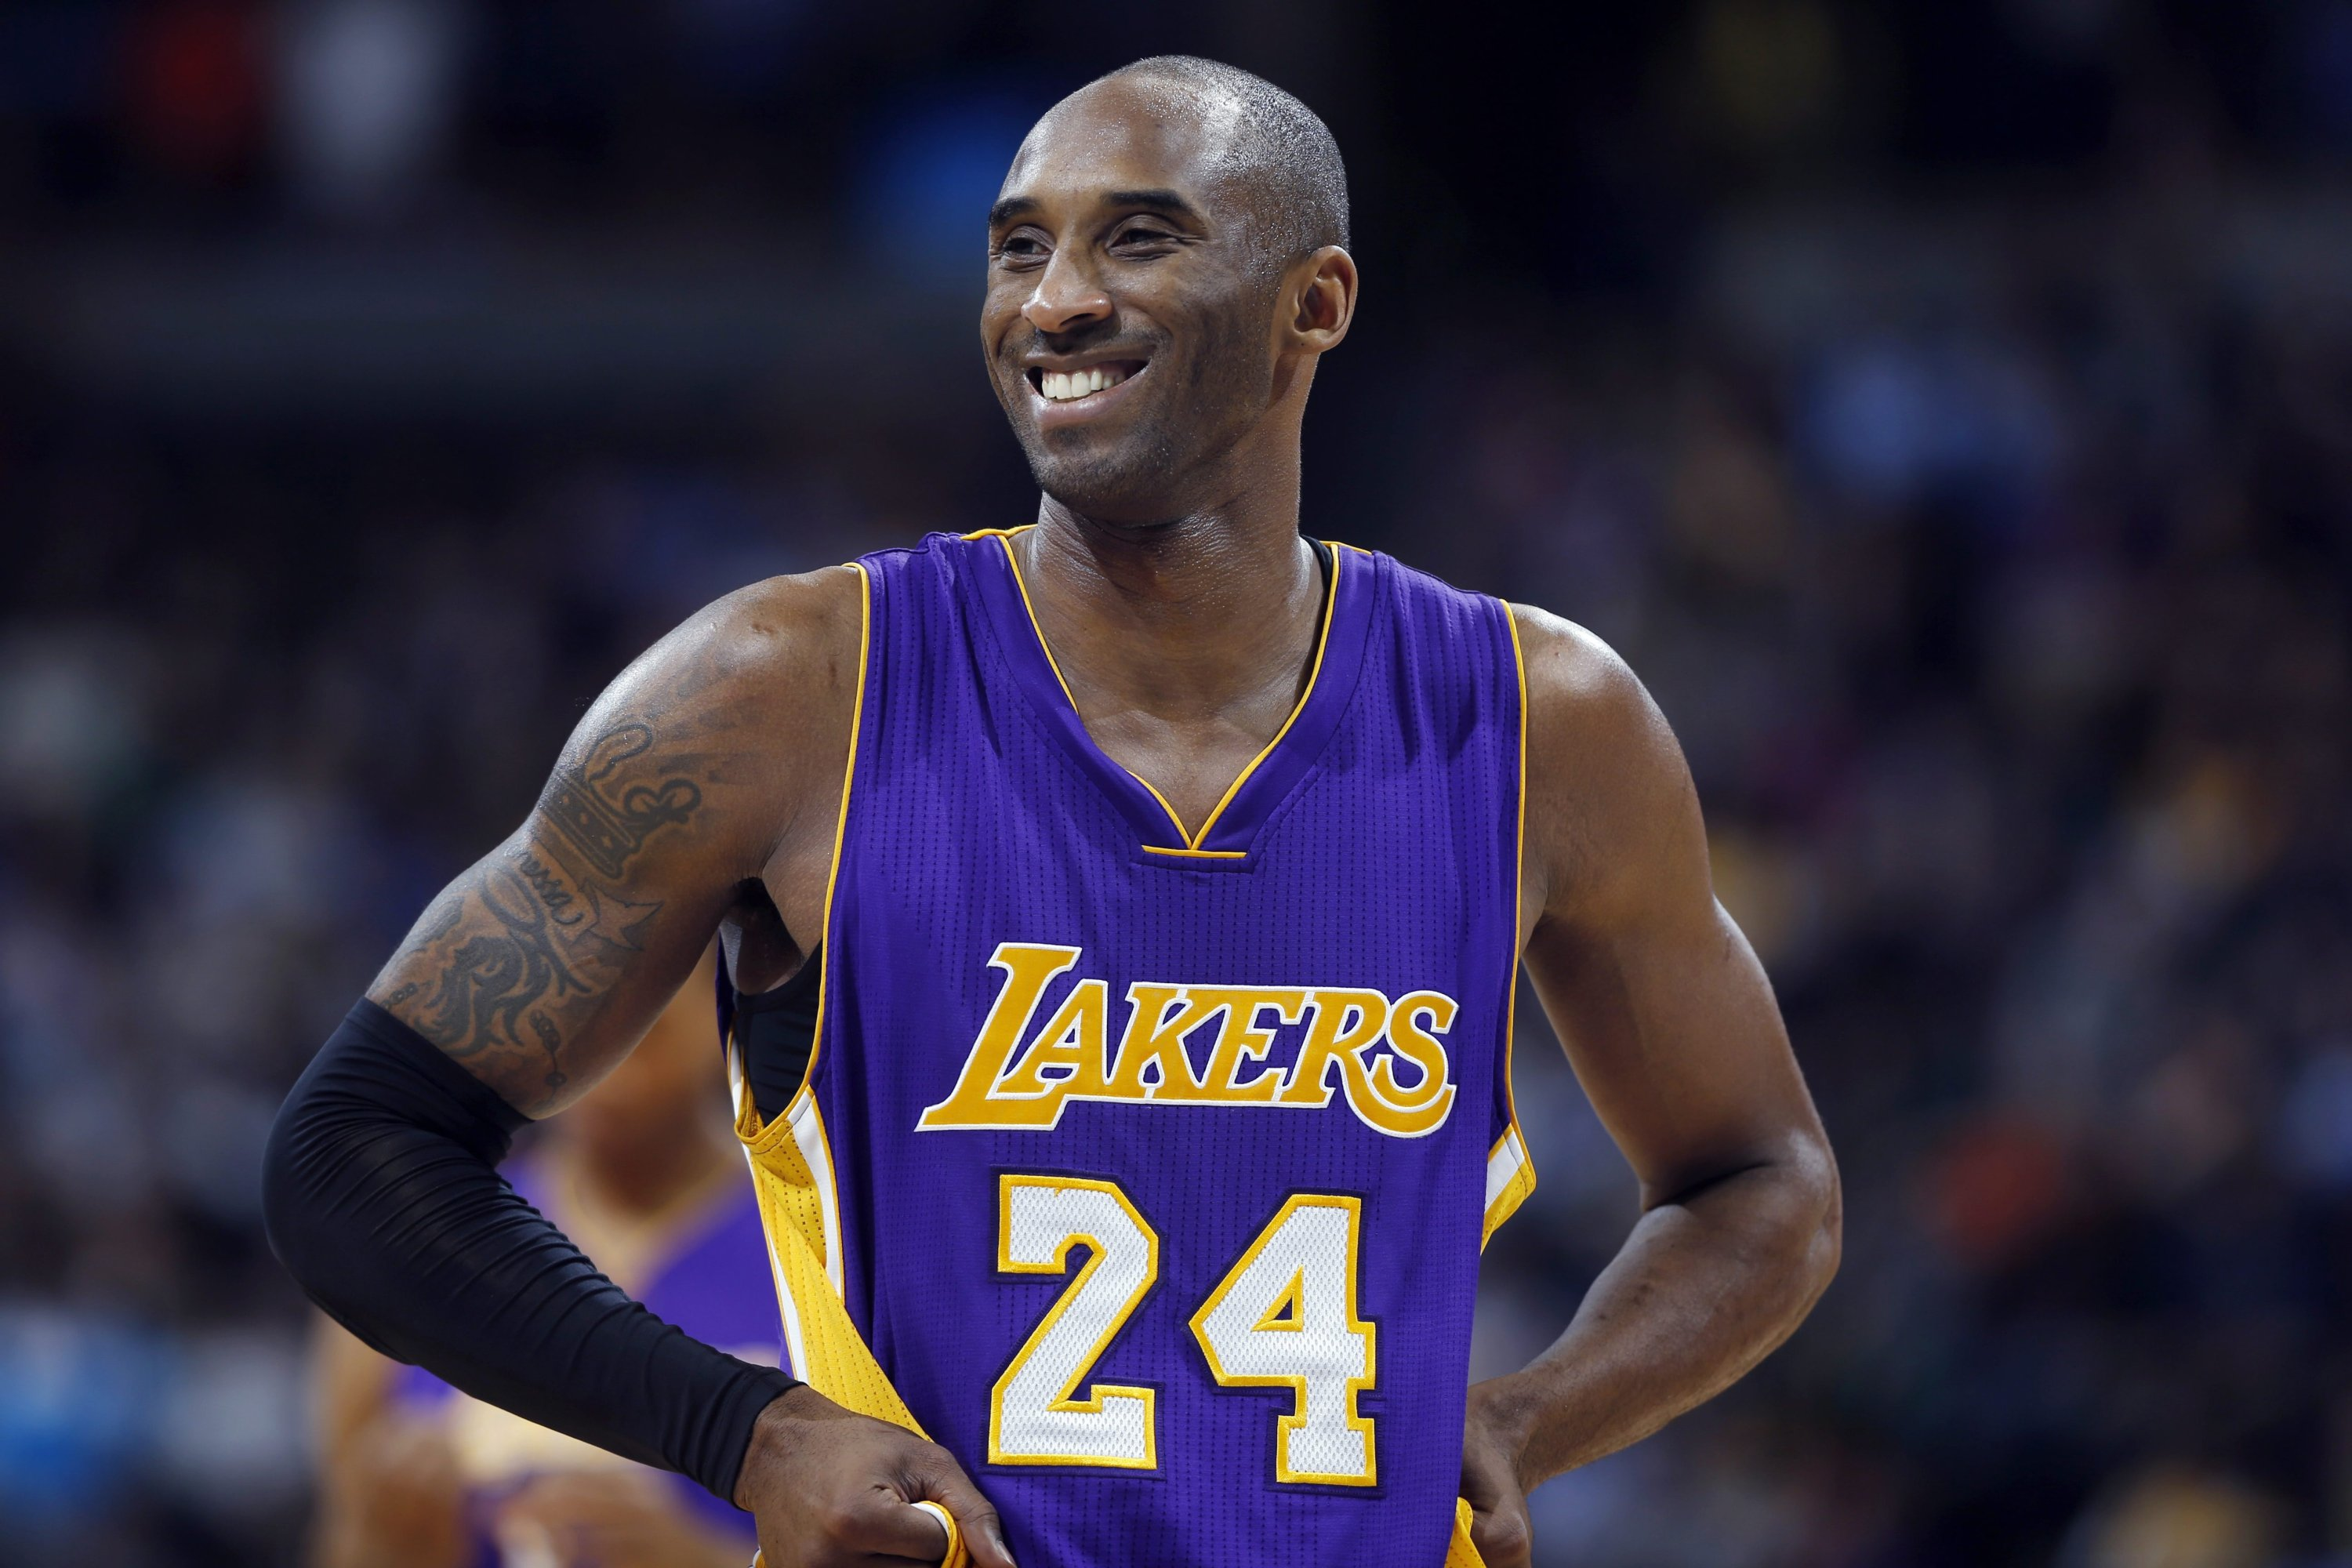 Los Angeles Lakers guard Kobe Bryant stands on the court during a review in the fourth quarter of an NBA basketball game against the Denver Nuggets in Denver, Colorado, U.S., Dec. 30, 2014. (AP Photo)